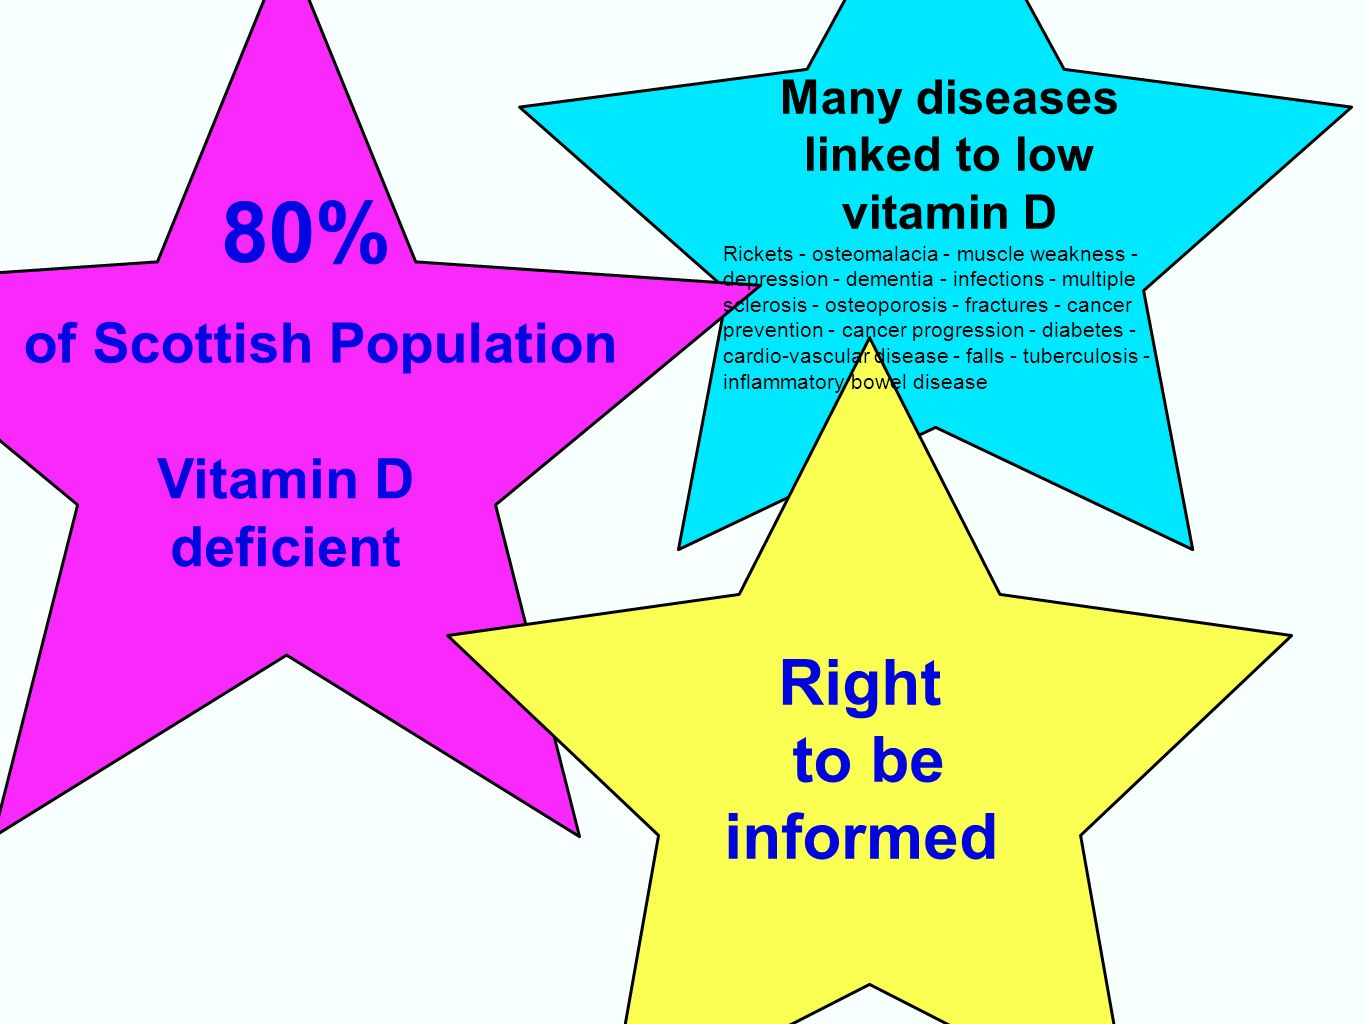 Right to be informed 80% Vitamin D deficient of Scottish Population Many diseases linked to low vitamin D Rickets - osteomalacia - muscle weakness - depression - dementia - infections - multiple sclerosis - osteoporosis - fractures - cancer prevention - cancer progression - diabetes - cardio-vascular disease - falls - tuberculosis - inflammatory bowel disease